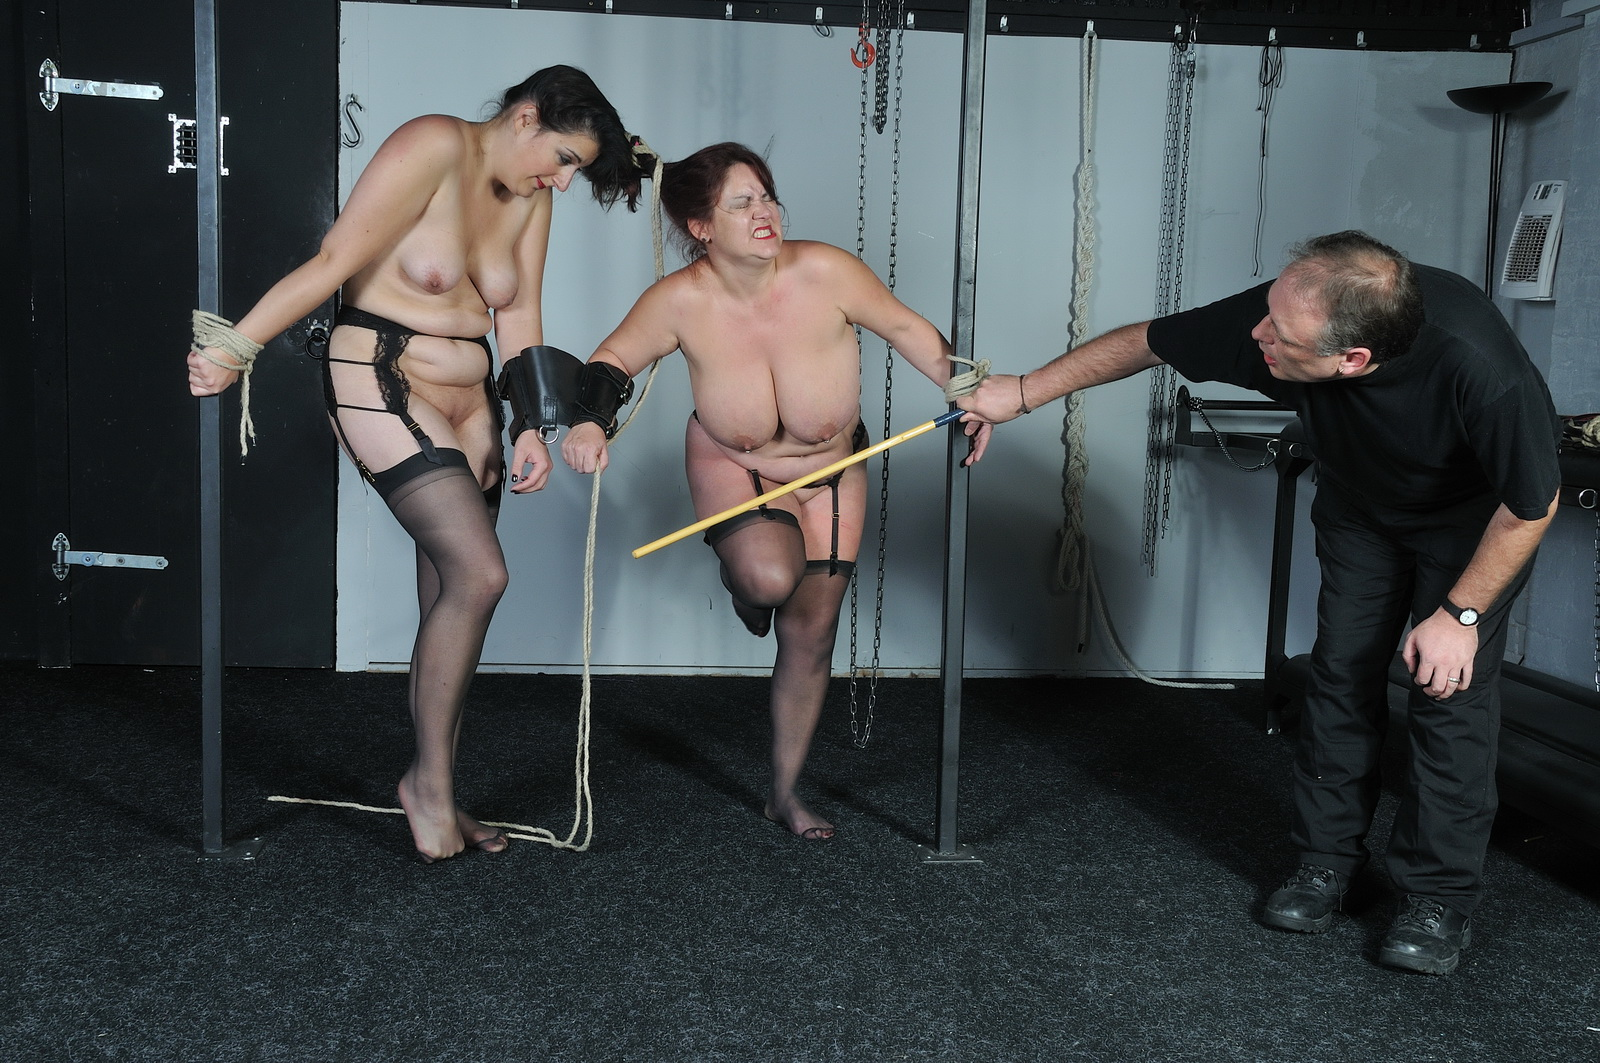 porno-video-bdsm-vecherinki